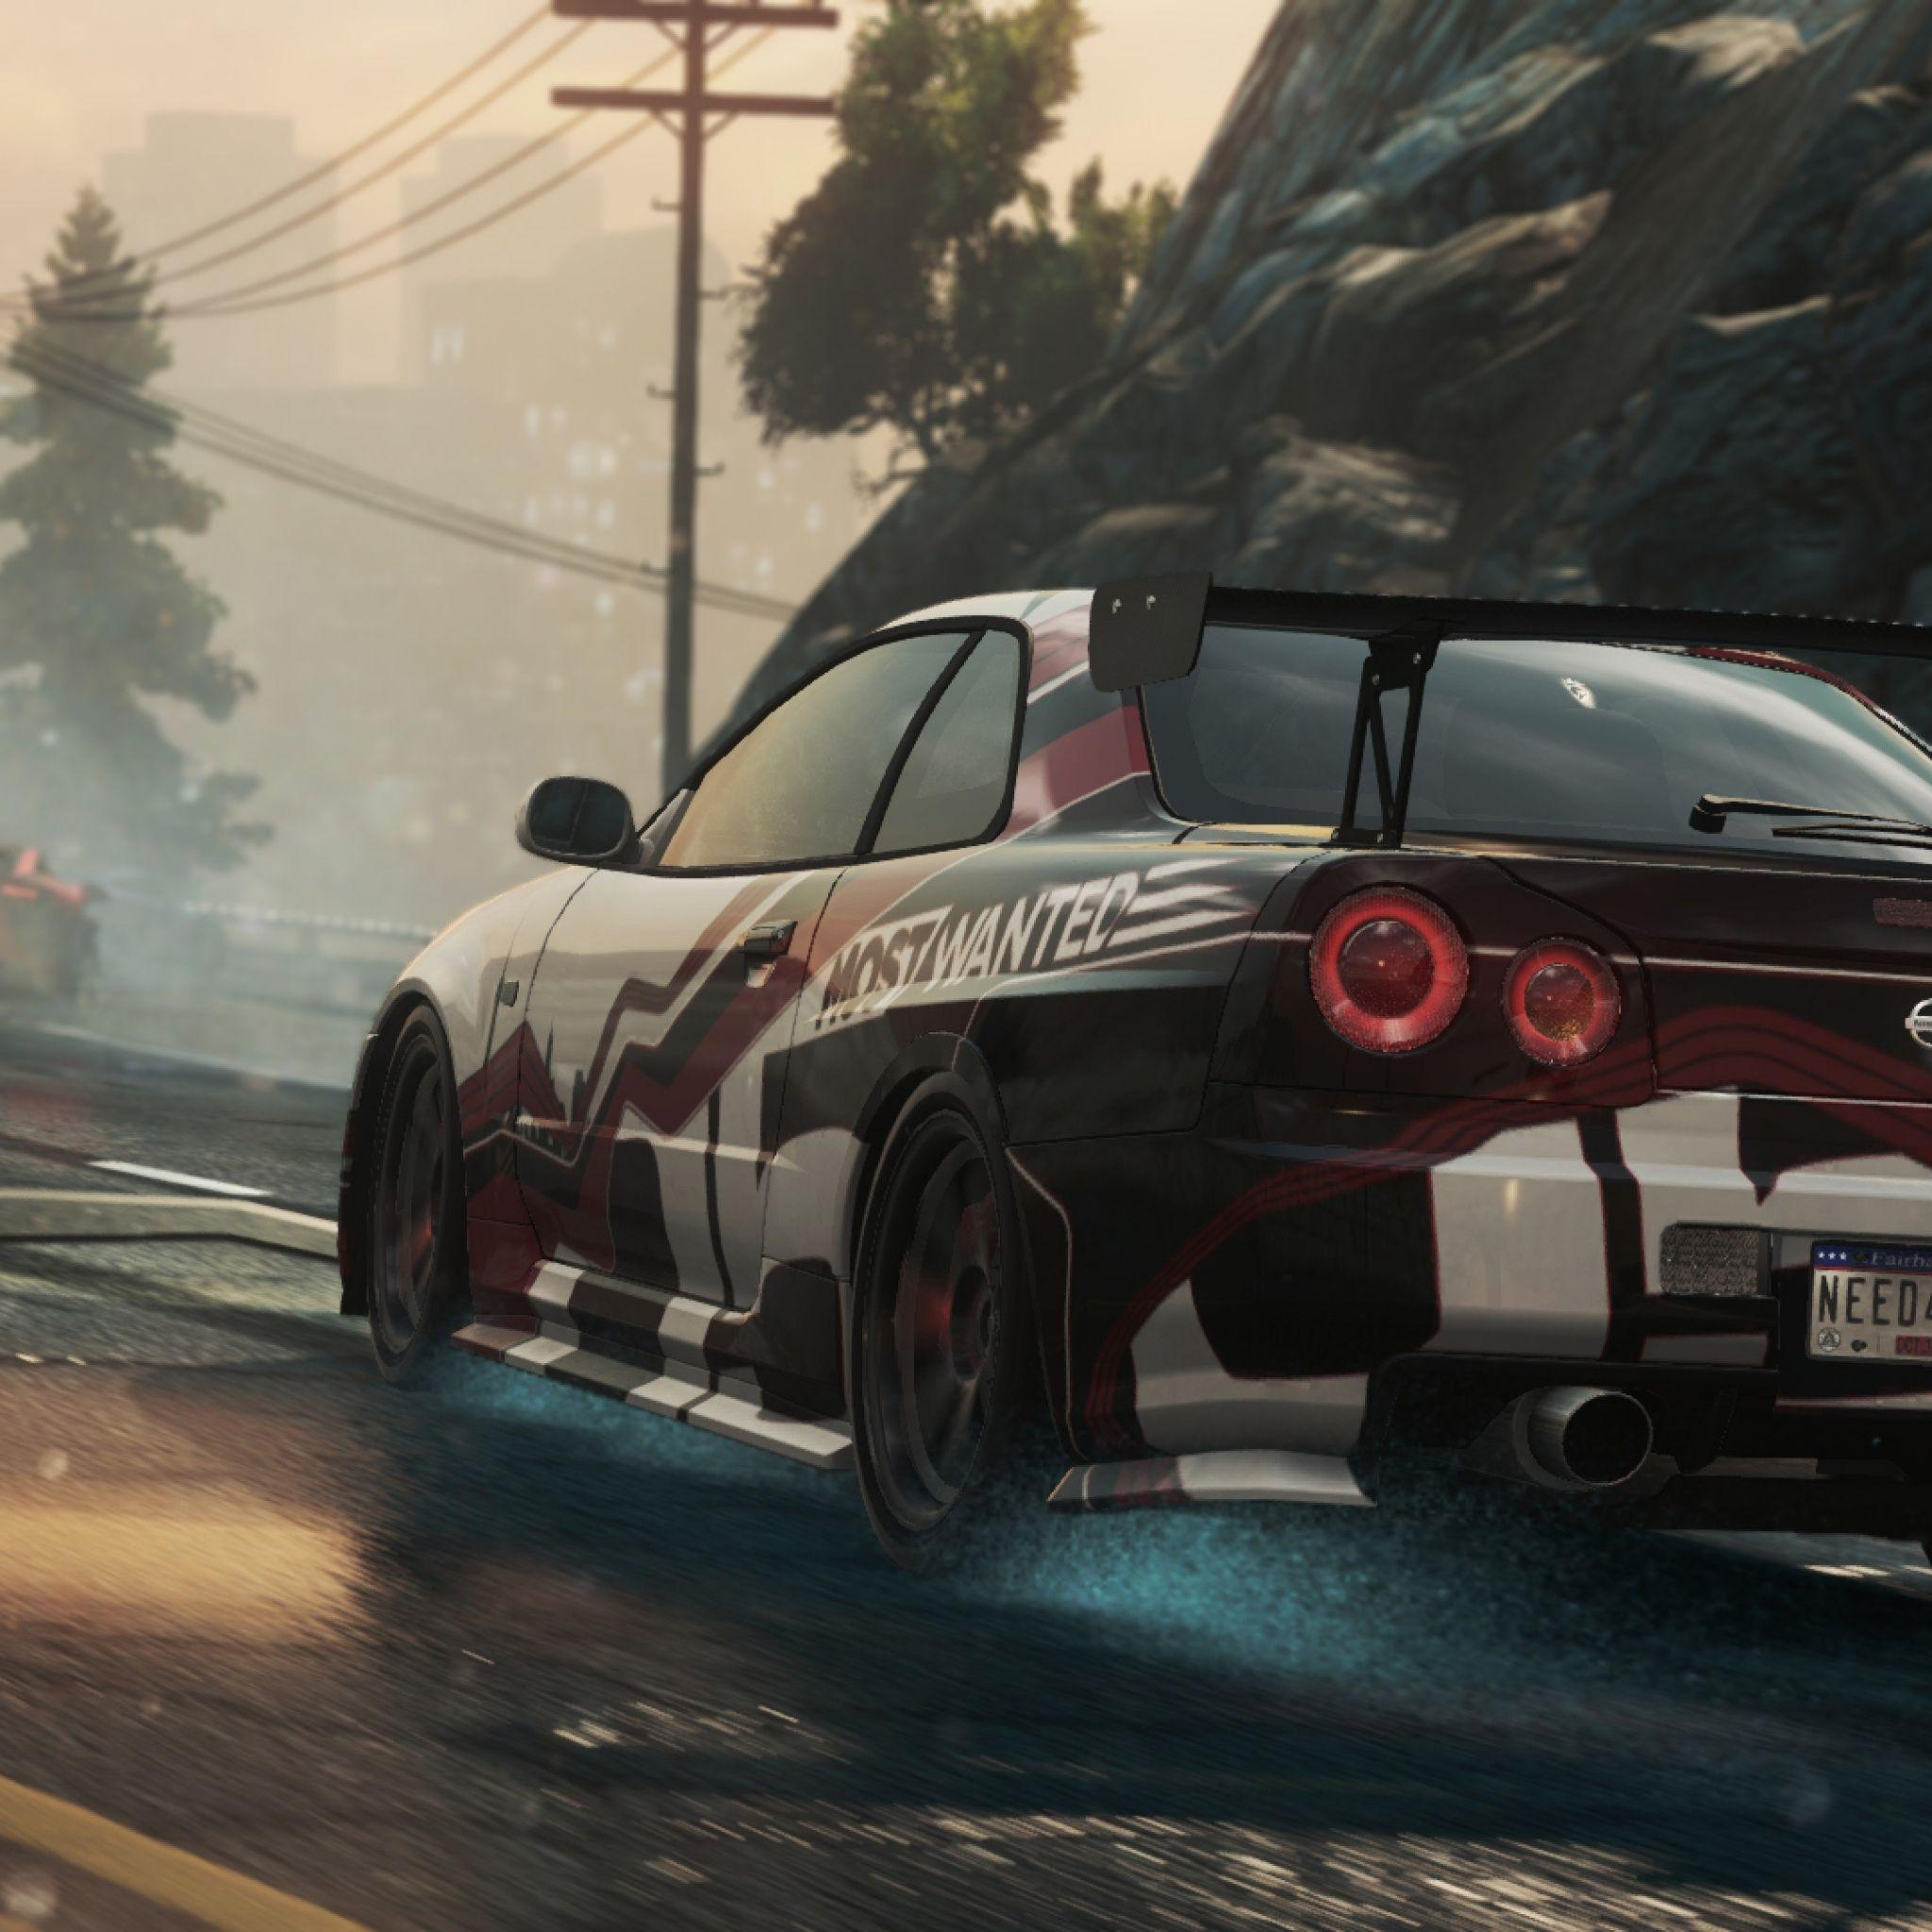 Download Wallpaper 2048x2048 Need for speed, Nissan skyline gt-r ...